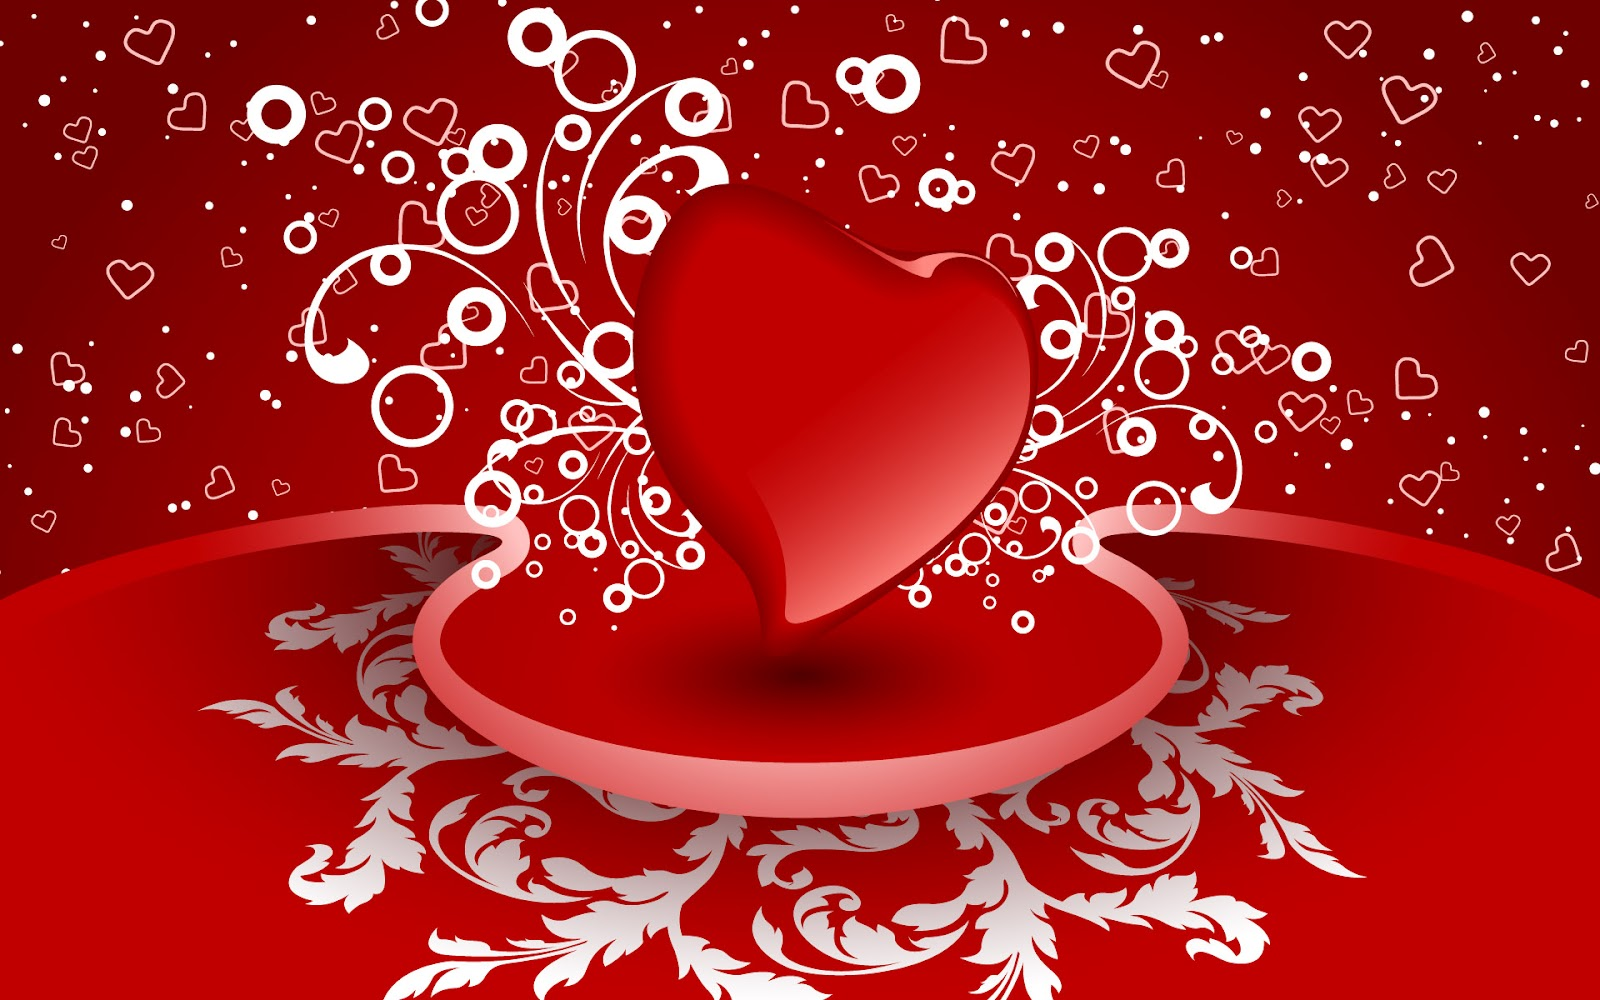 30 Happy Kiss Day Pictures Wallpapers For Lover Special: Online Wallpapers Shop: Happy Valentines Day Pictures 2013